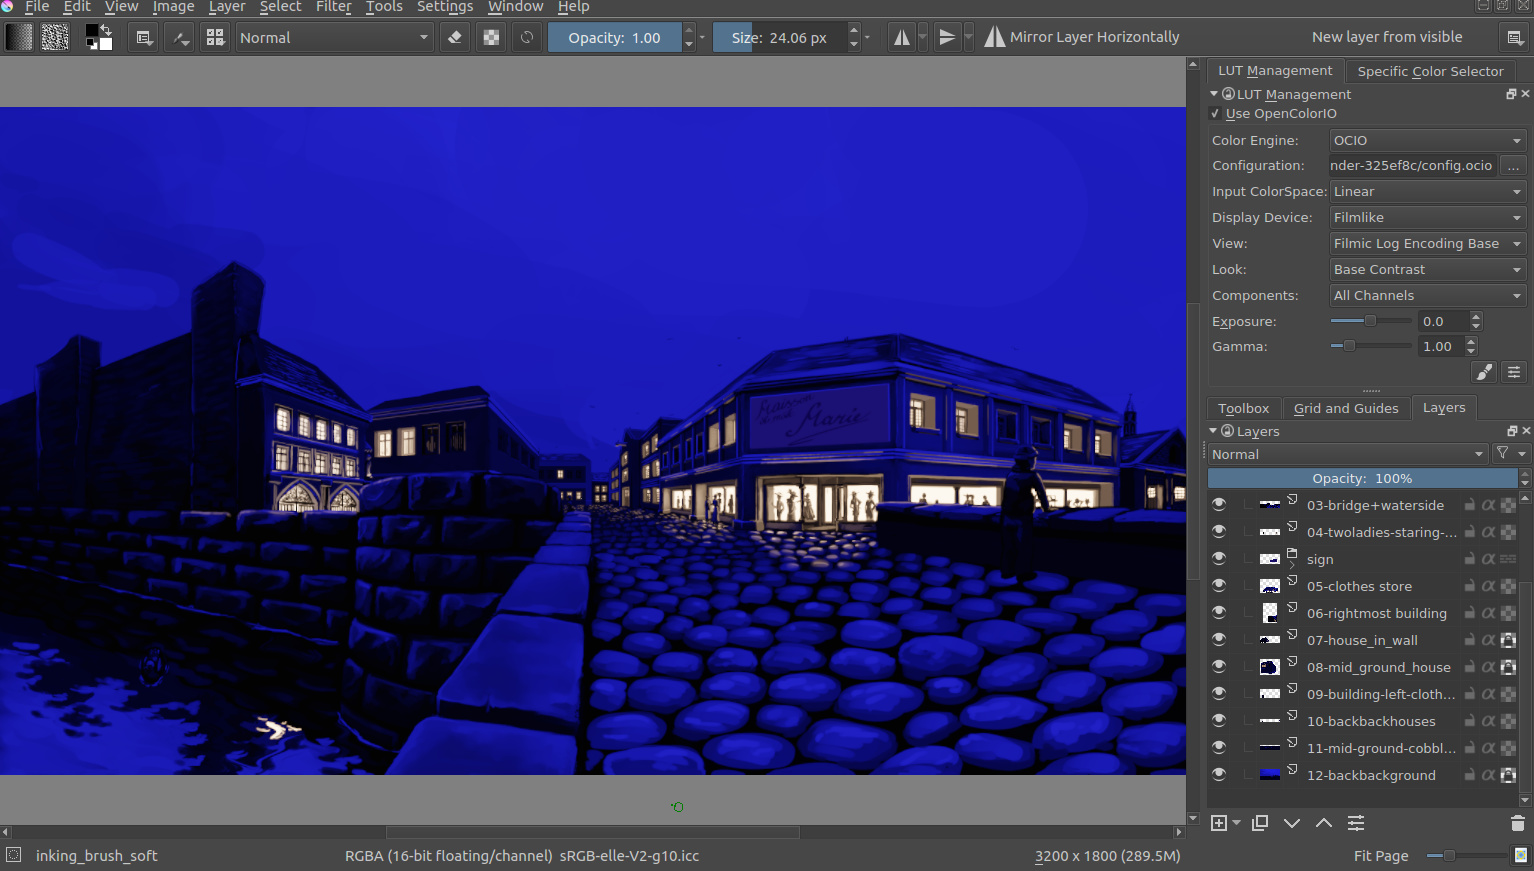 HDR painting experiments in Krita + compositing in Blender